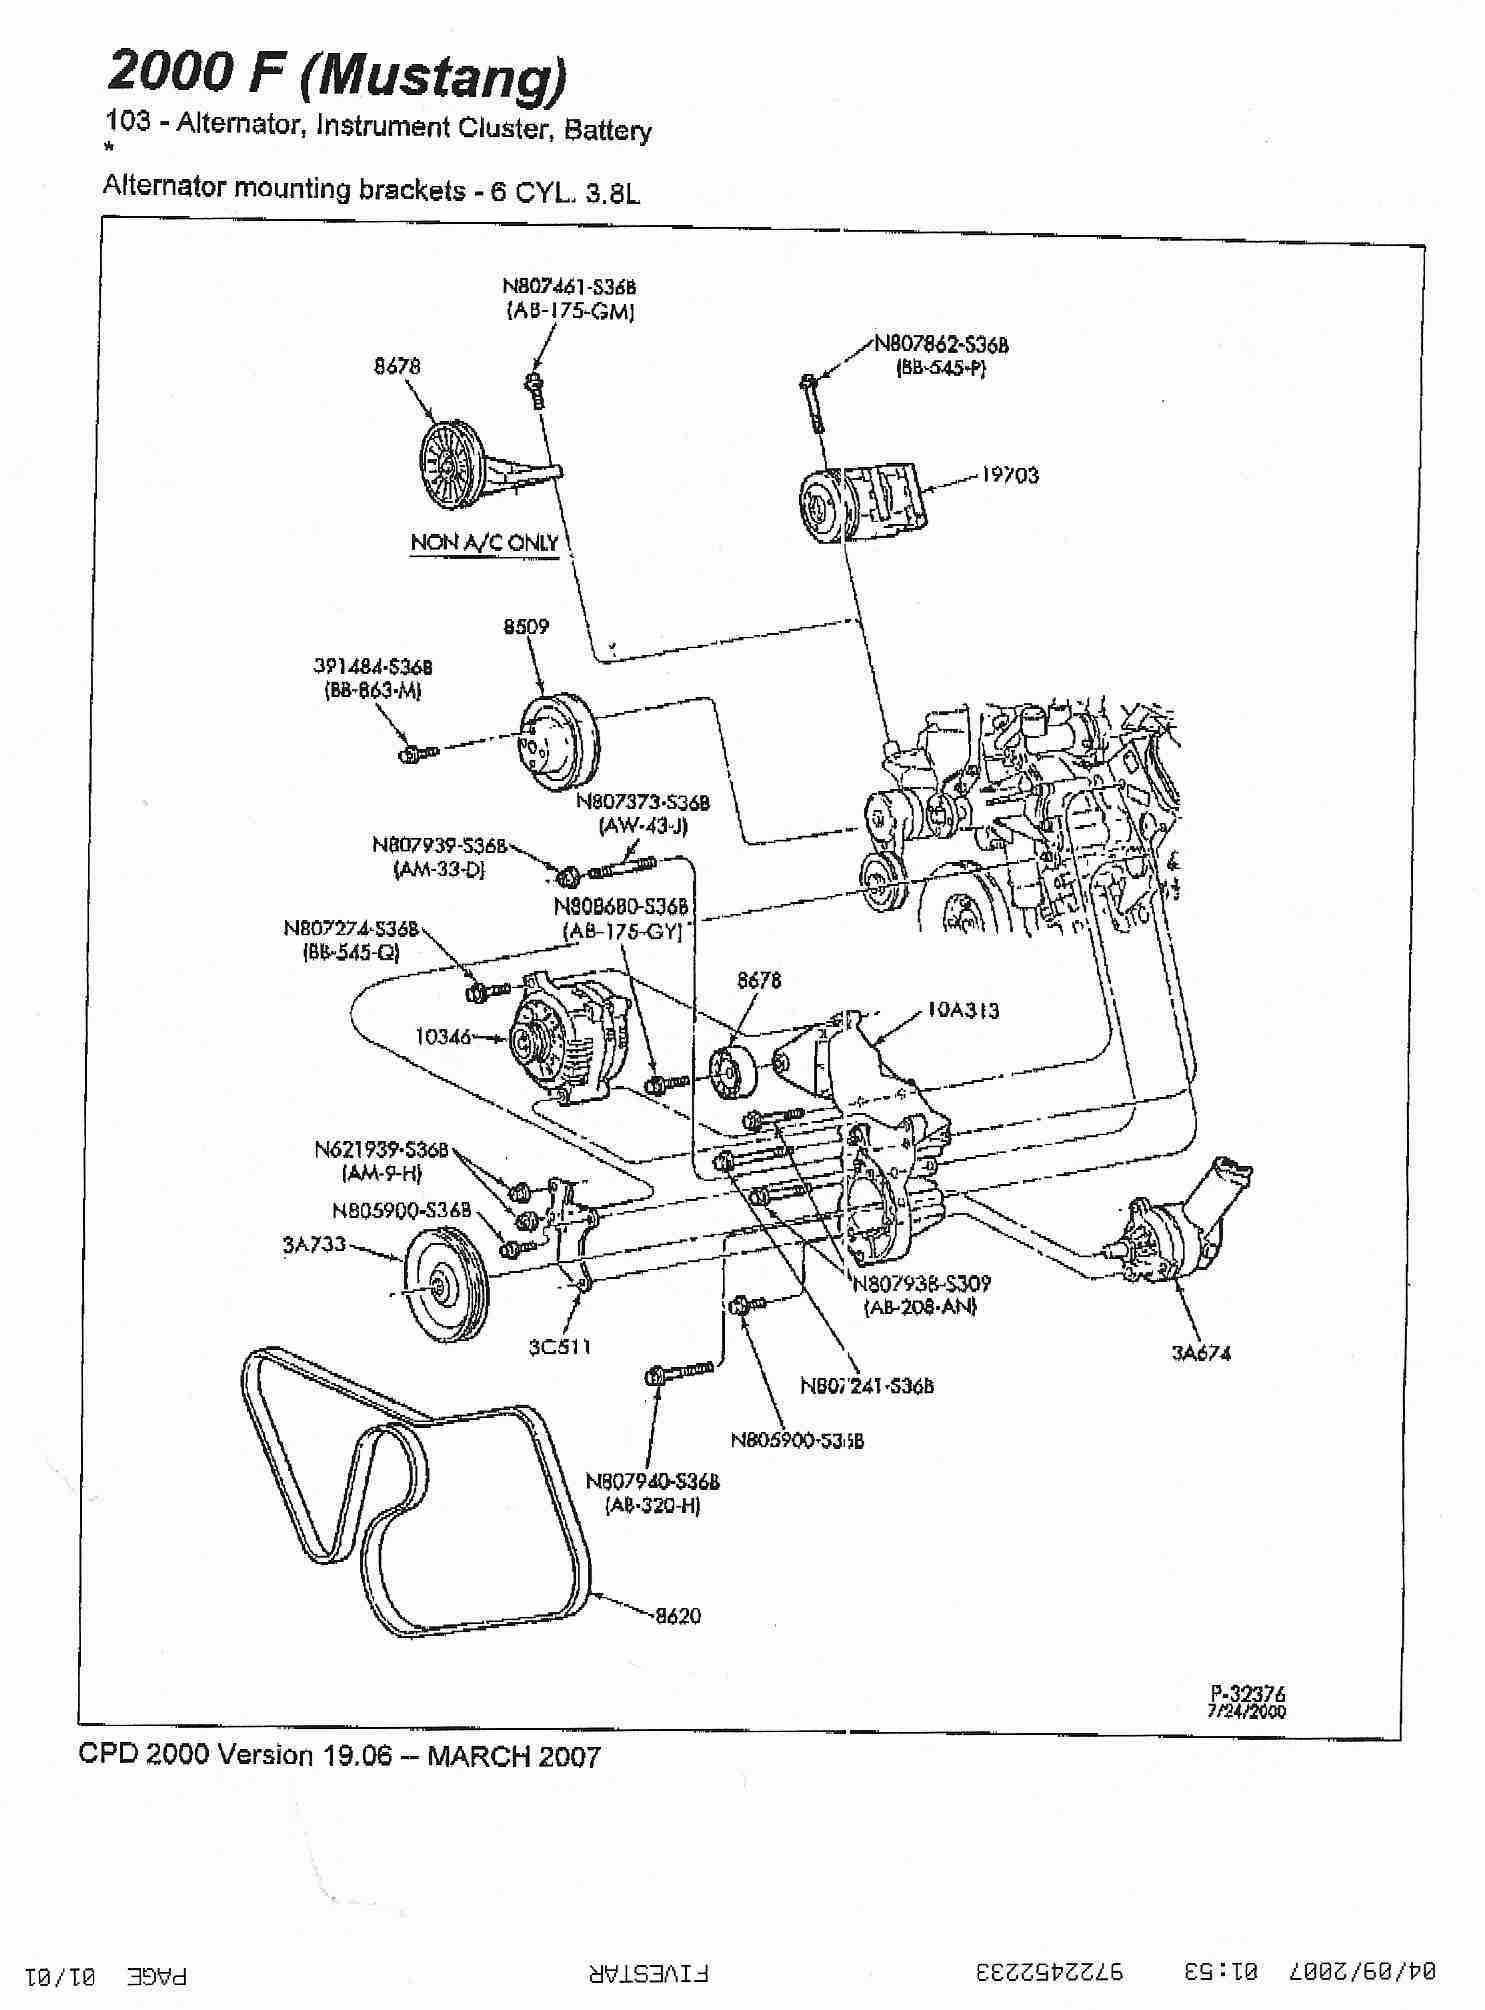 2000 mustang ac diagram wiring info a c delete belt route 99 04 3 8 ford mustang forum rh allfordmustangs com 2000 ford mustang ac diagram 2000 ford mustang ac diagram sciox Gallery